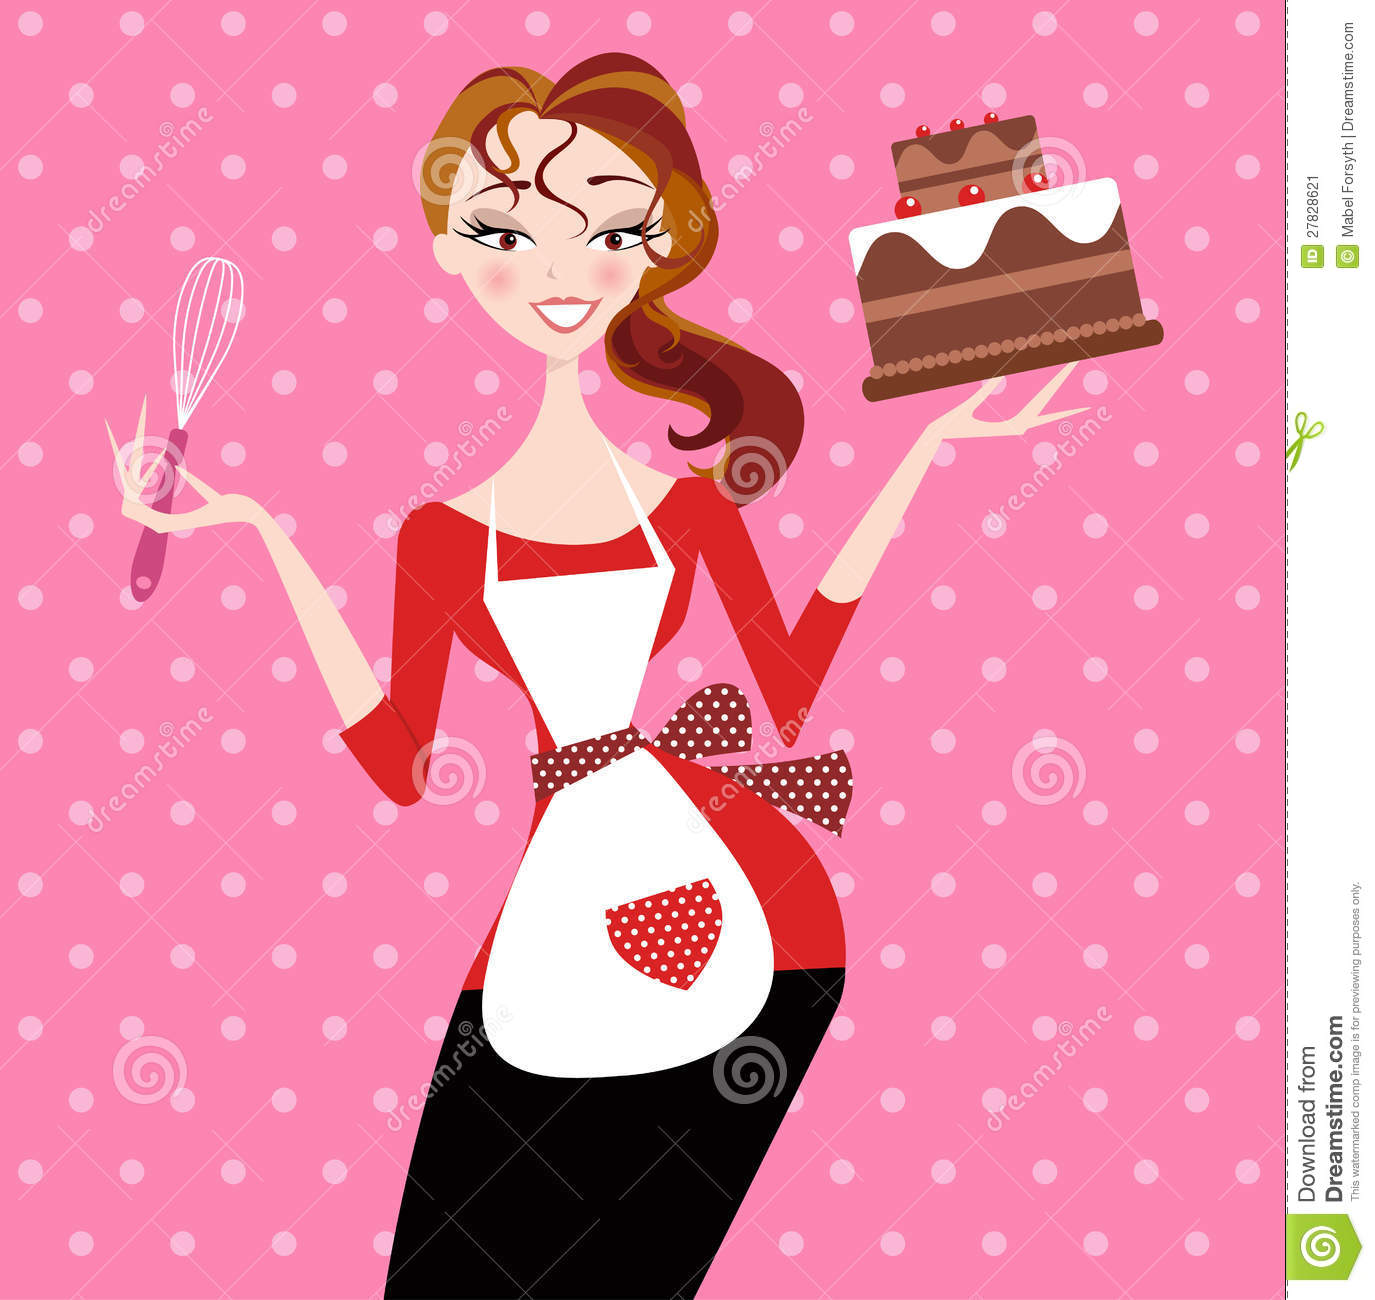 Stock Image: Woman in Apron Holding Chocolate Cake. Image: 27828621